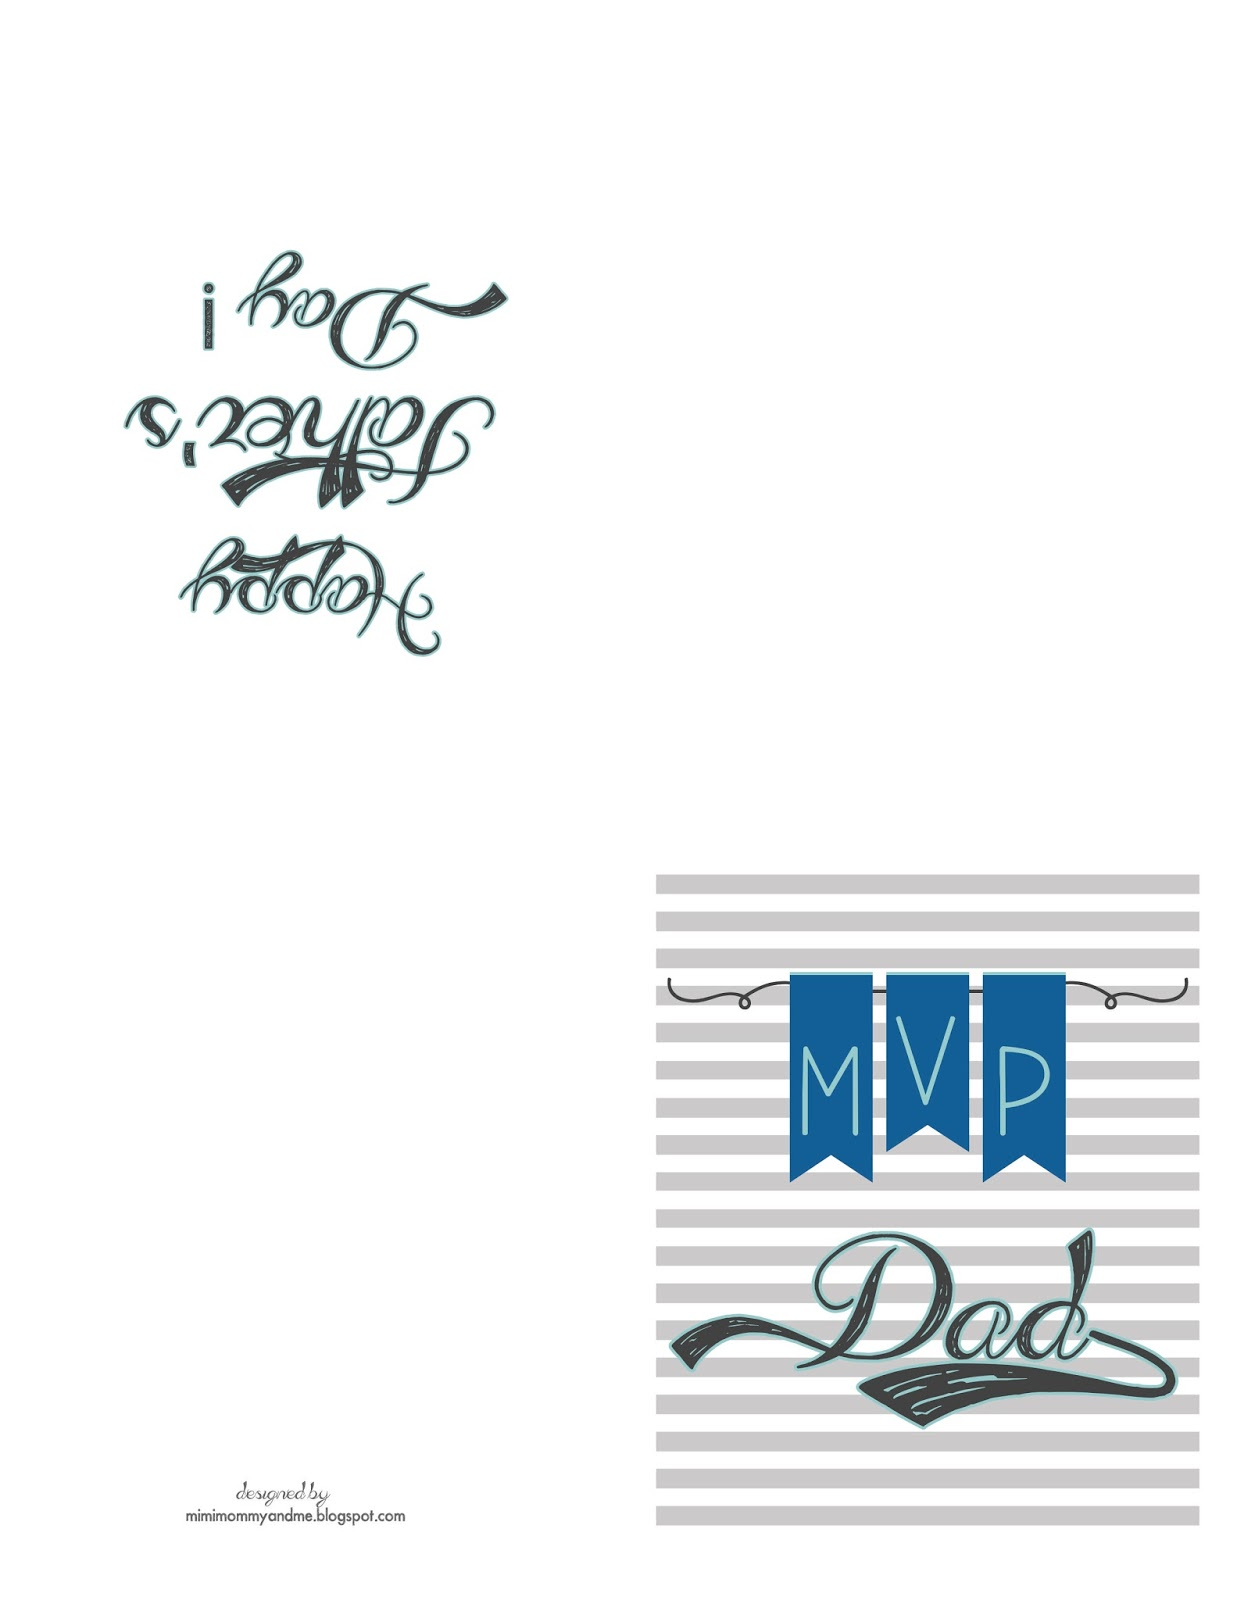 http://mimimommyandme.blogspot.com/2014/06/fathers-day-card-free-printable.html #fathersdaycard #fathersday #freeprintable #printable #card